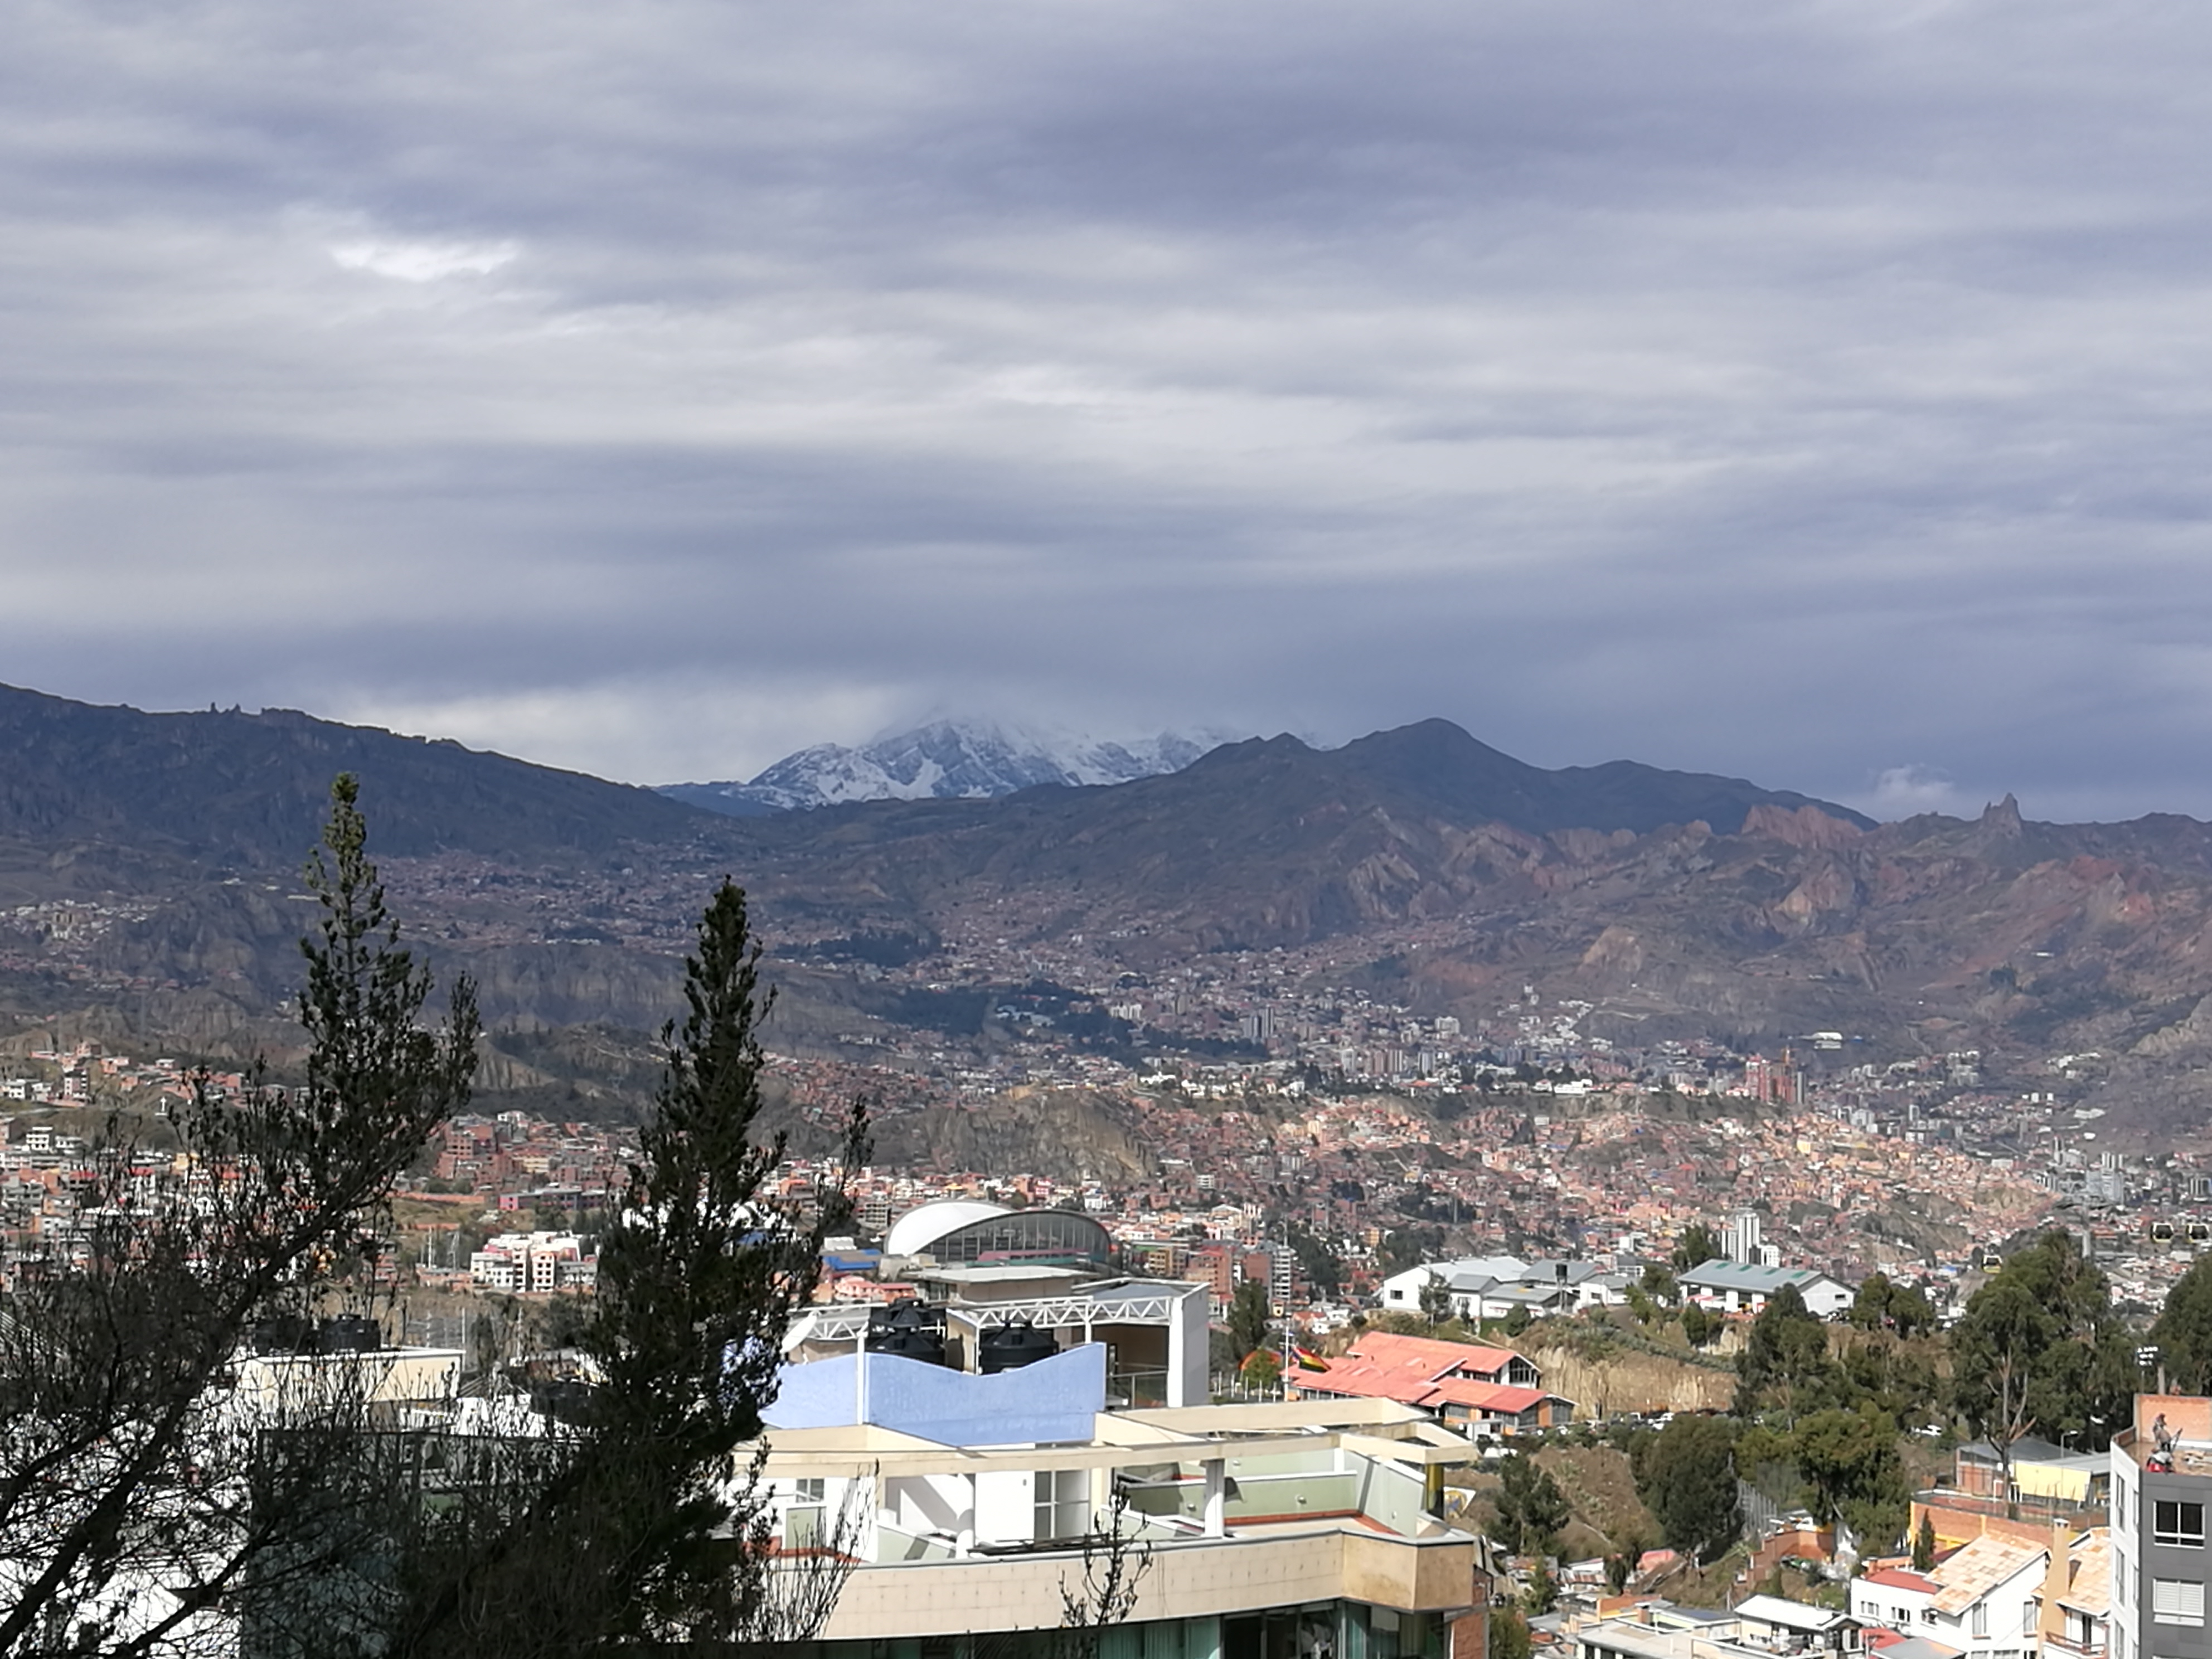 Scenes from the capital city, La Paz, Bolivia, as winter settles in on the city's trees and, surrounding mountains.